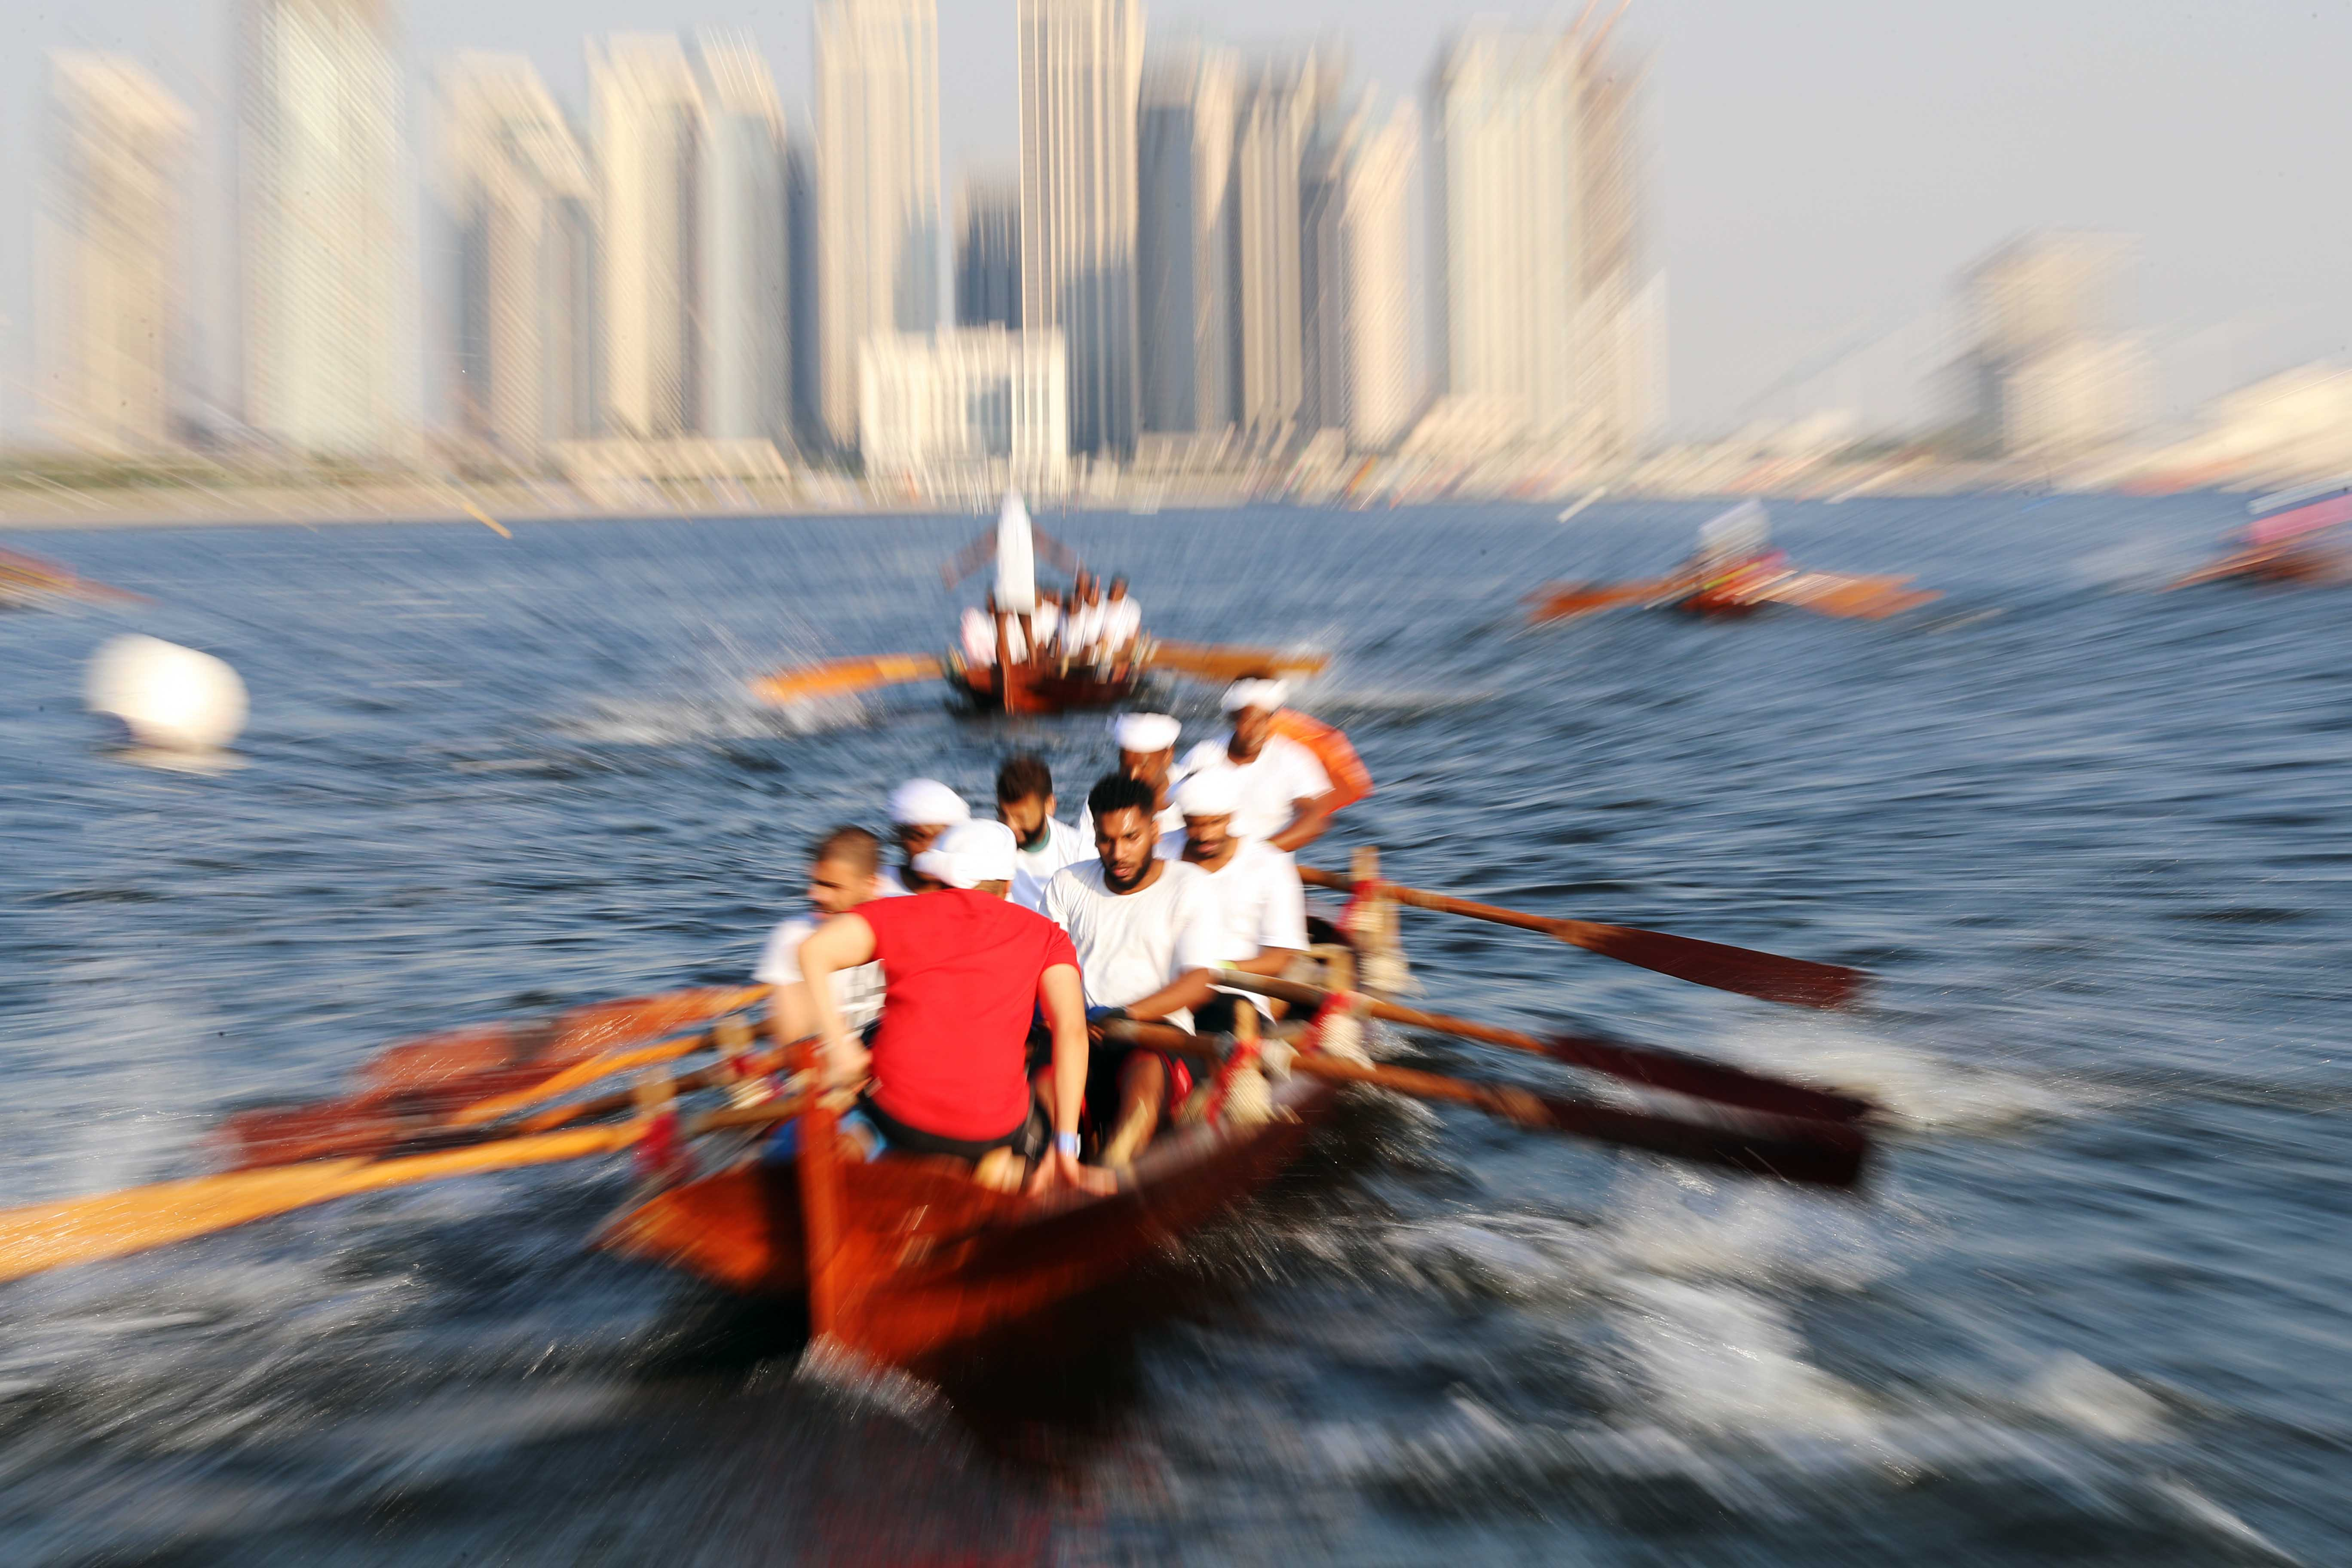 Registration Closes for Traditional Rowing tomorrow